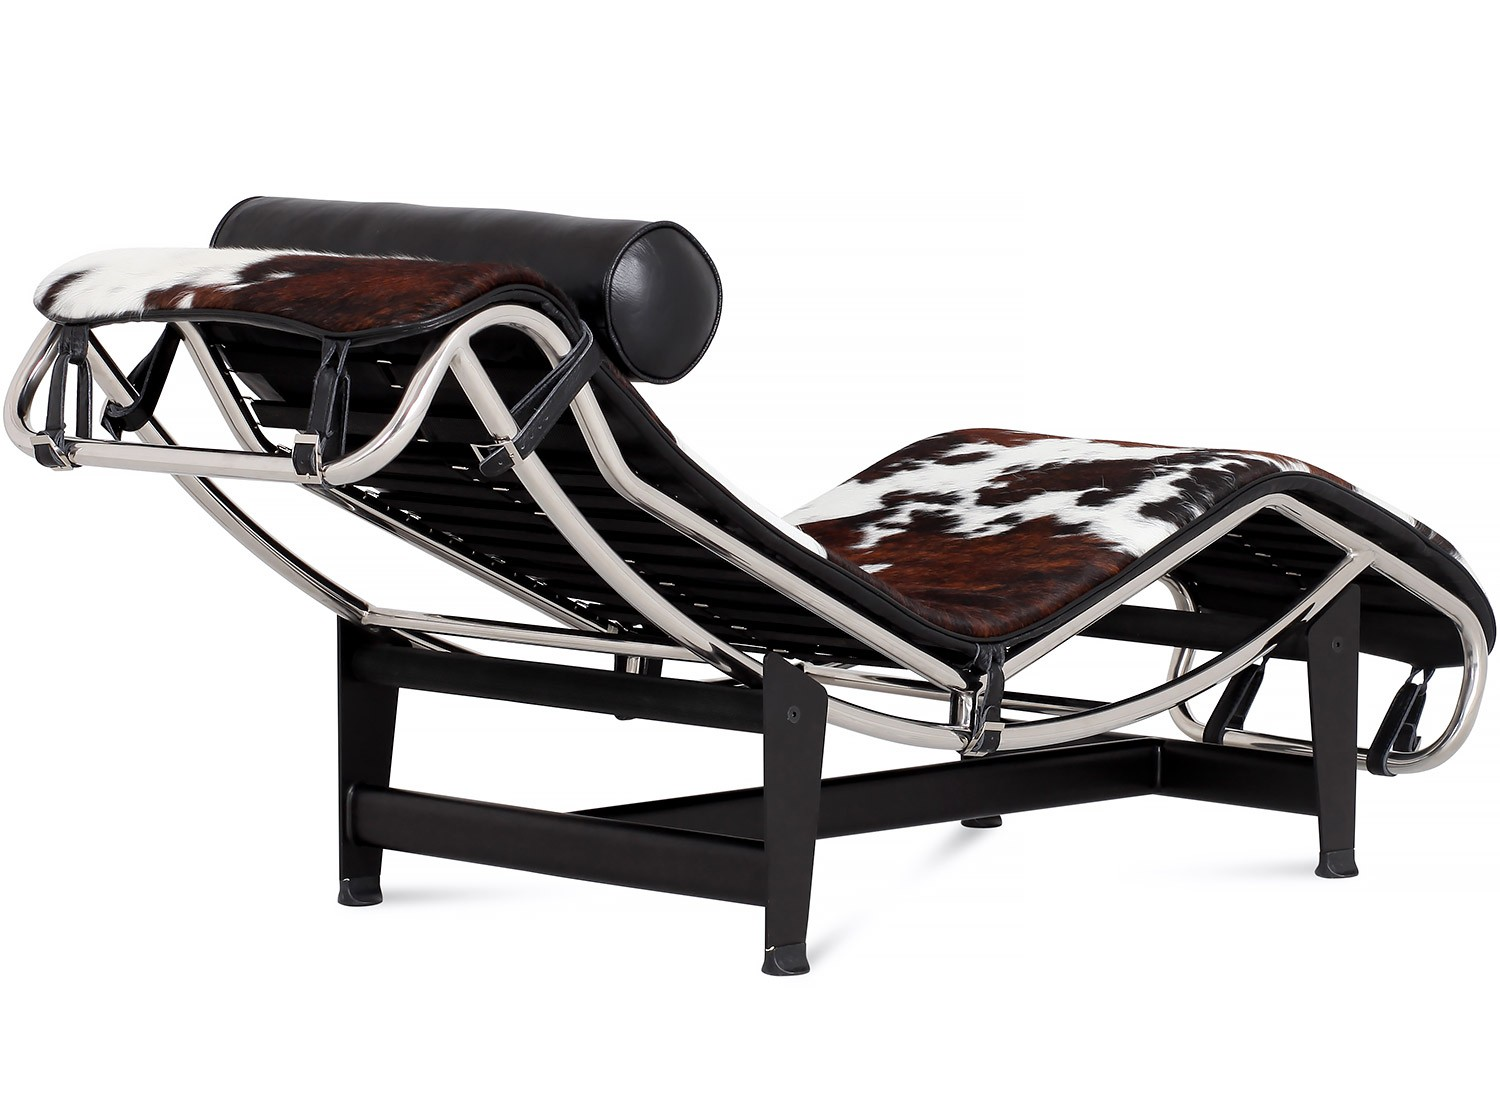 Le corbusier lc4 chaise longue cowhide platinum replica for Chaise longue lc4